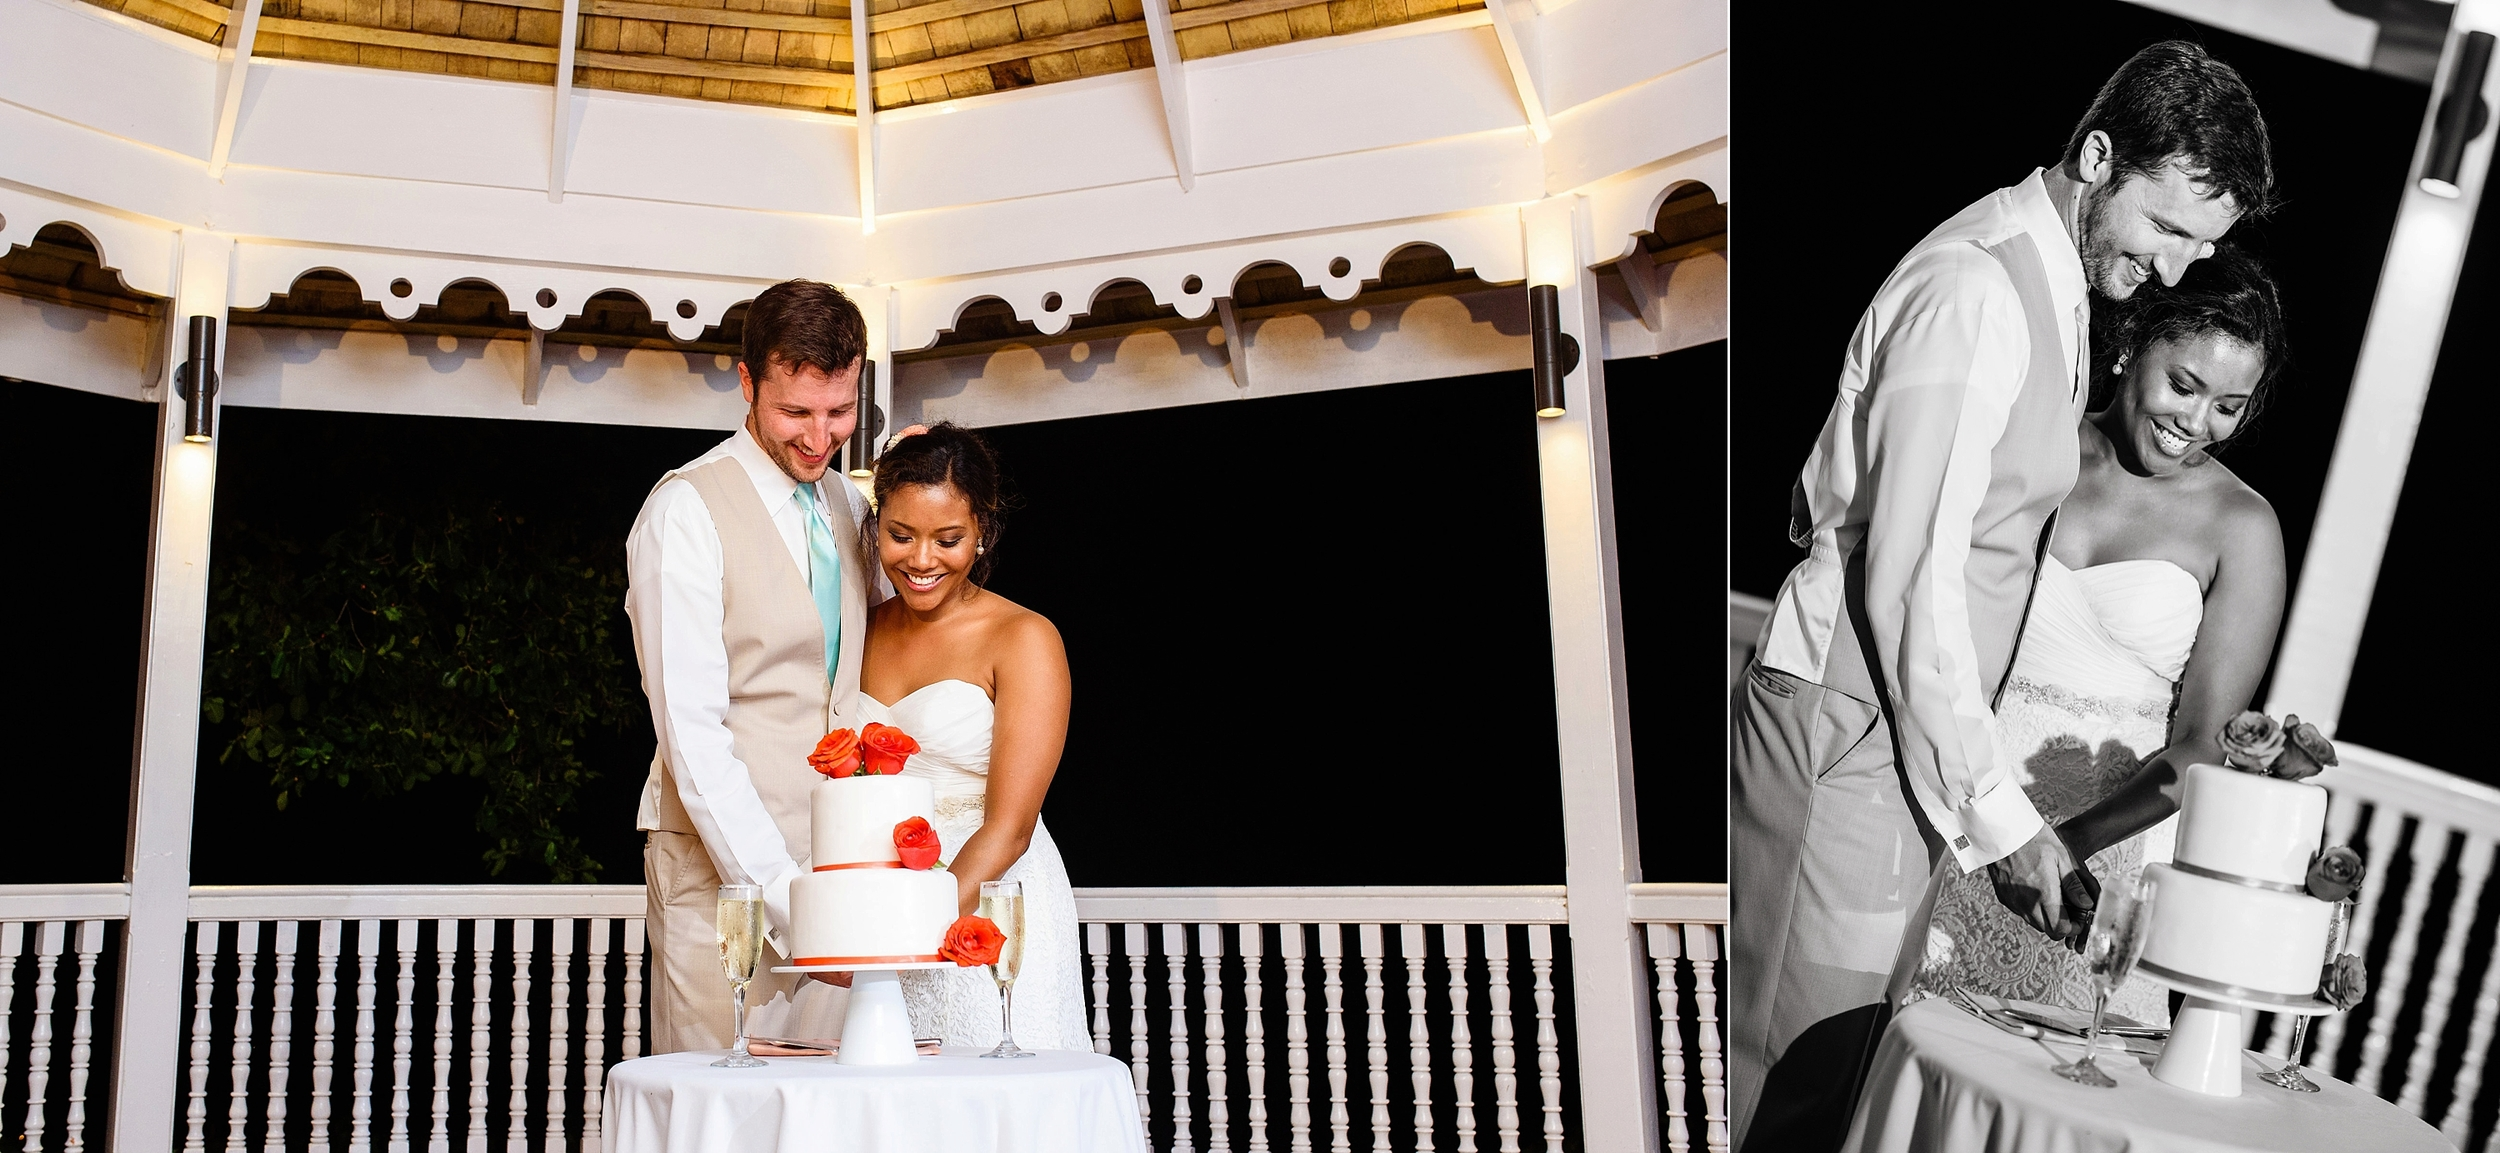 JamaicaWeddingPhotos_Ocho_Rios_Sandals076.jpg